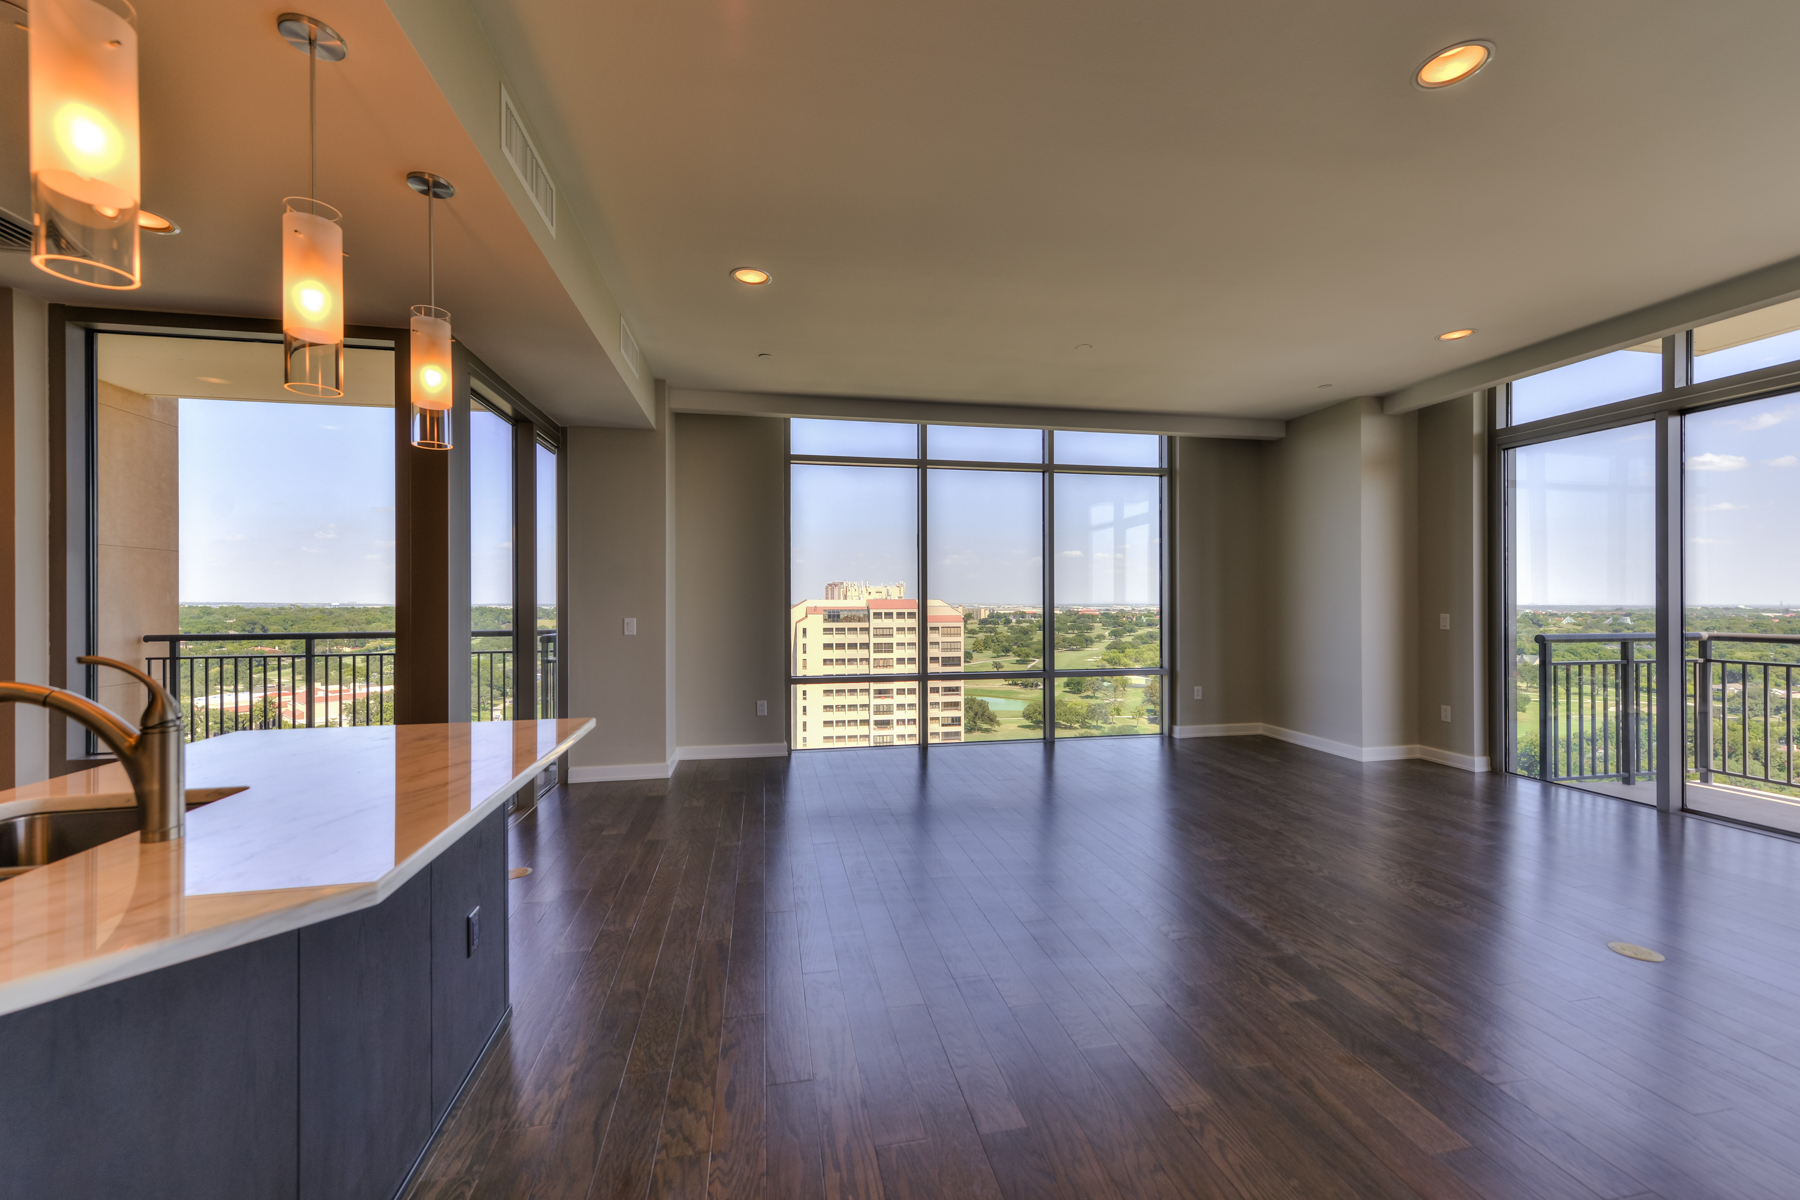 共管物業 為 出售 在 Luxury Living at The Broadway 4242 Broadway St 1701 San Antonio, 德克薩斯州 78209 美國